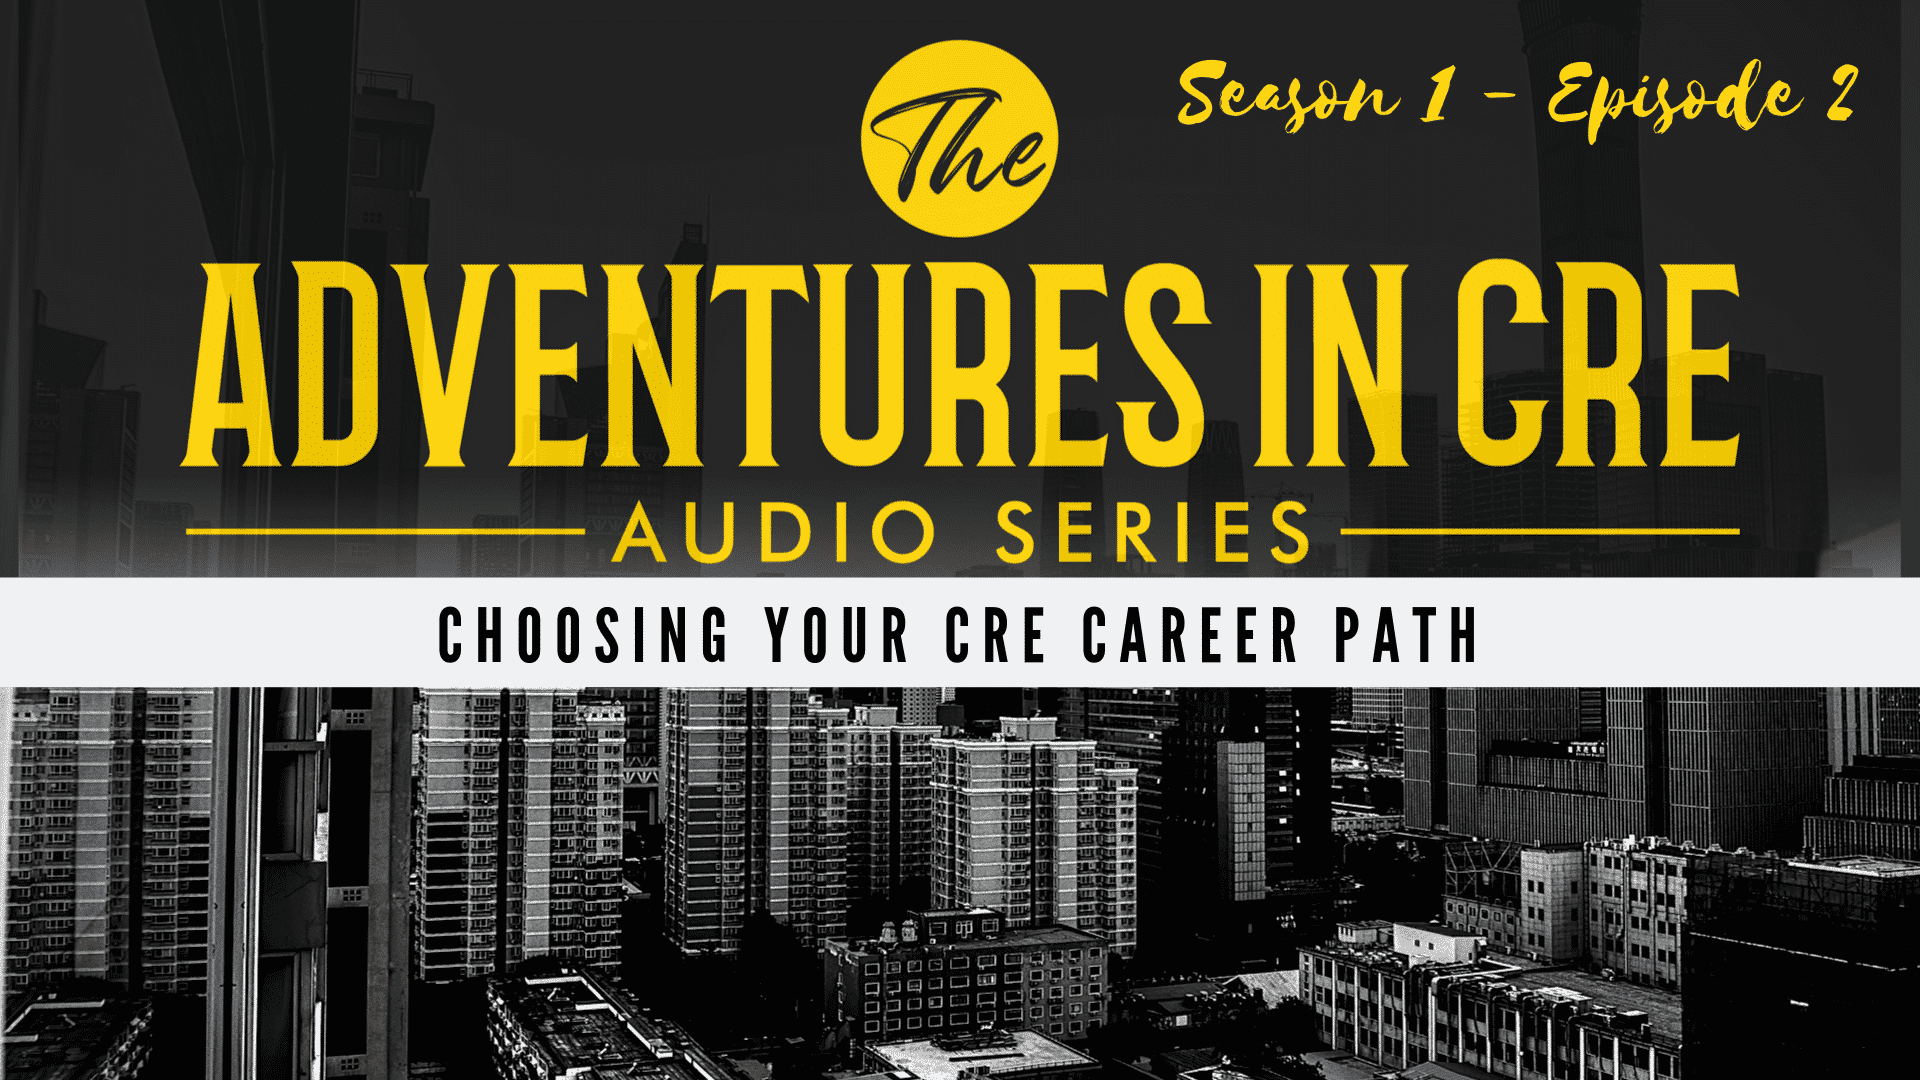 adventures in cre audio series season 1 episode 2 - choosing your commercial real estate career path